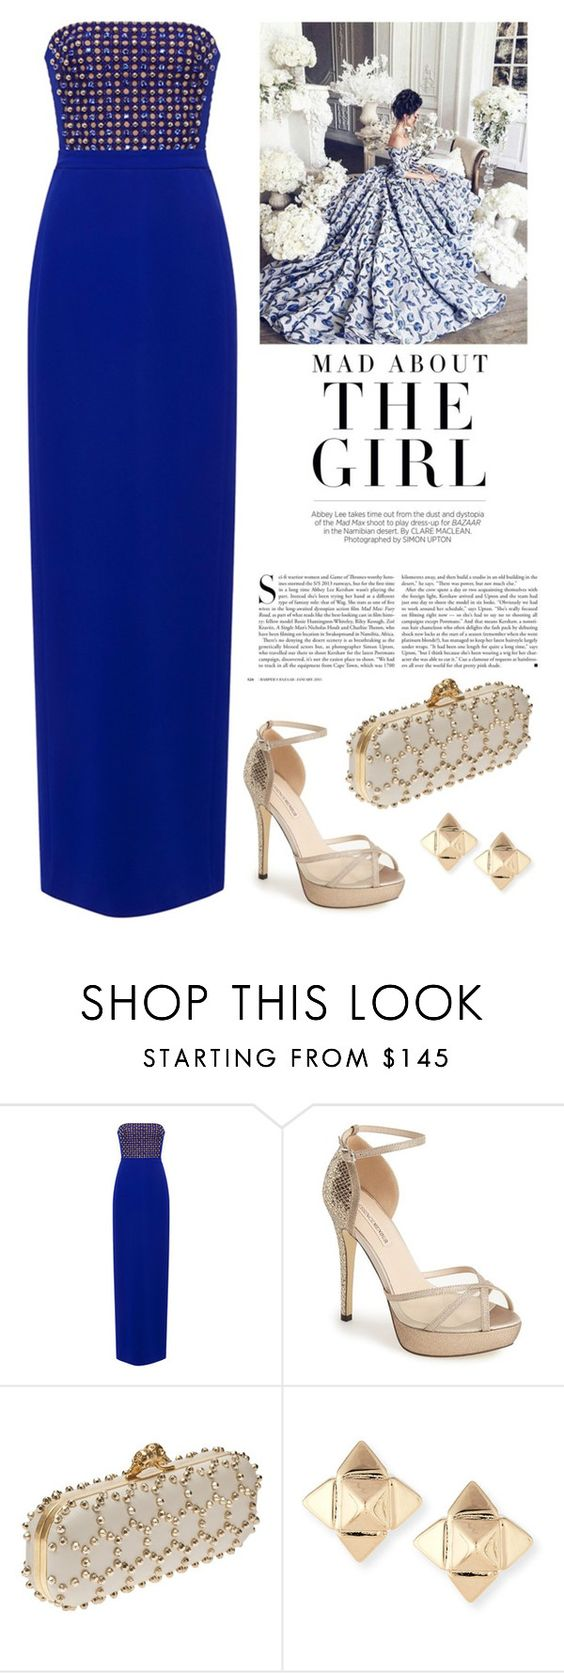 """Stud"" by elyherrera ❤ liked on Polyvore featuring Kershaw, David Koma, Menbur, Alexander McQueen and Valentino"